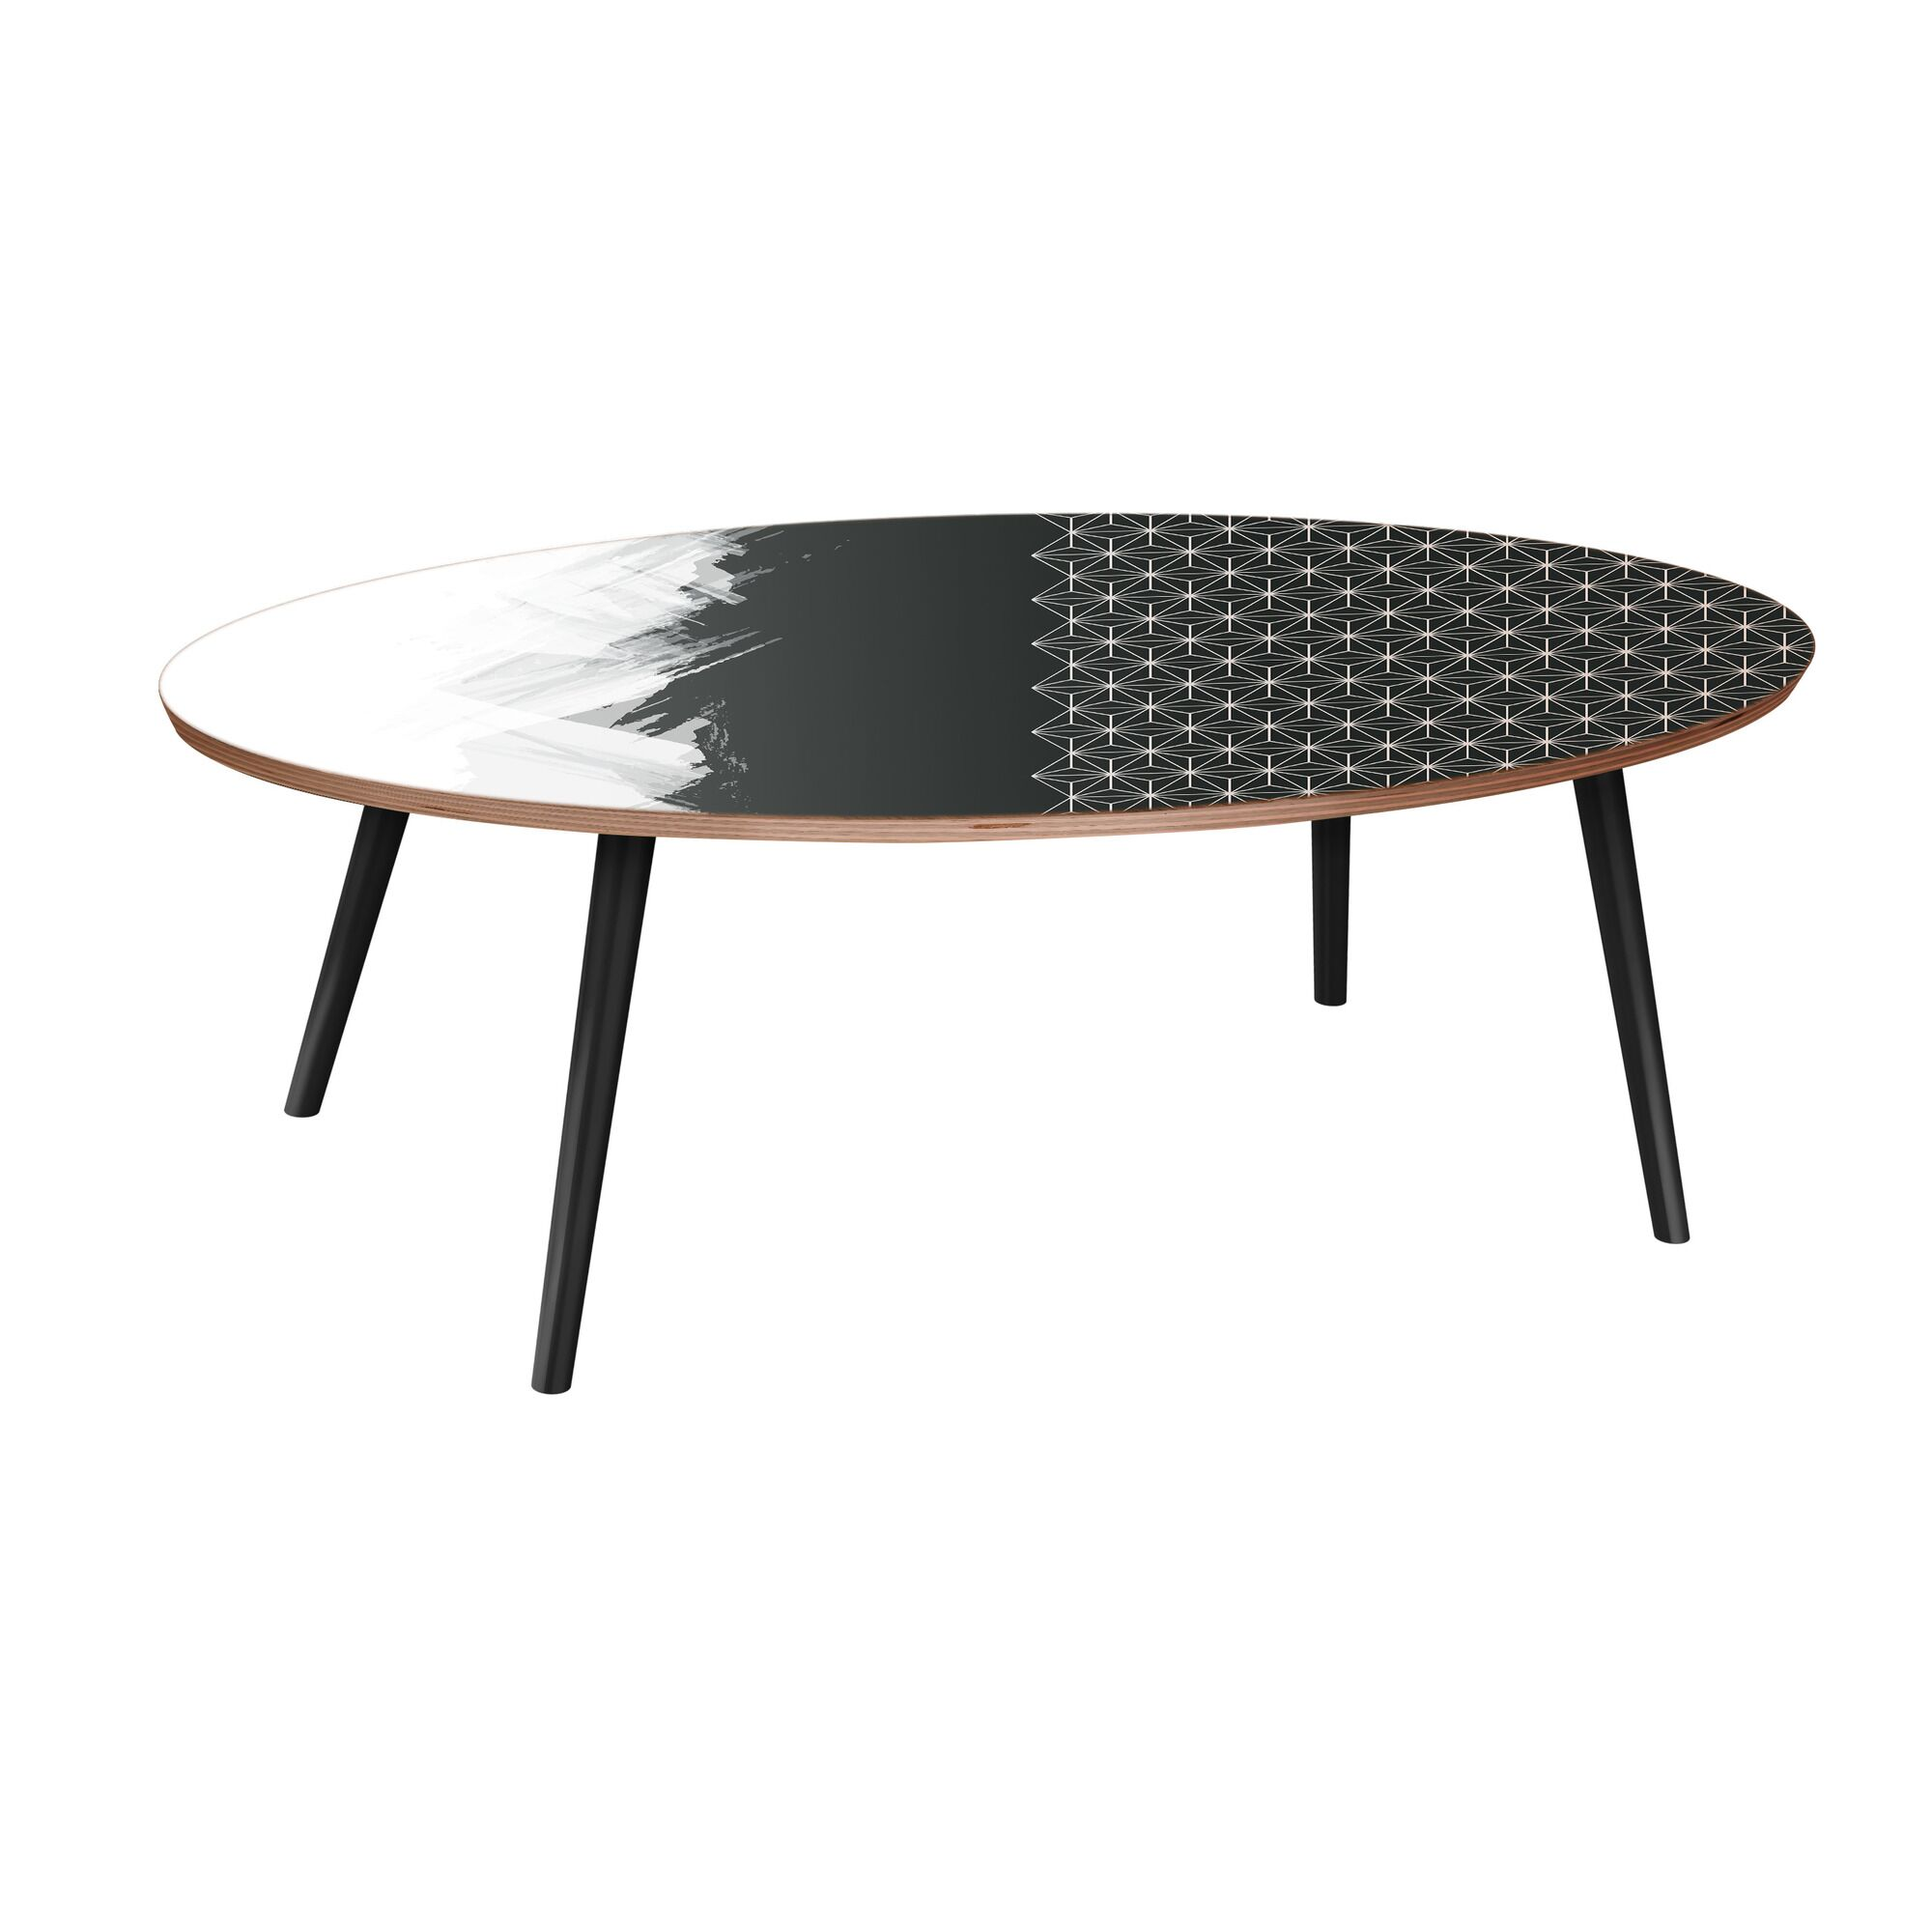 Essex Street Coffee Table Table Base Color: Black, Table Top Color: Walnut